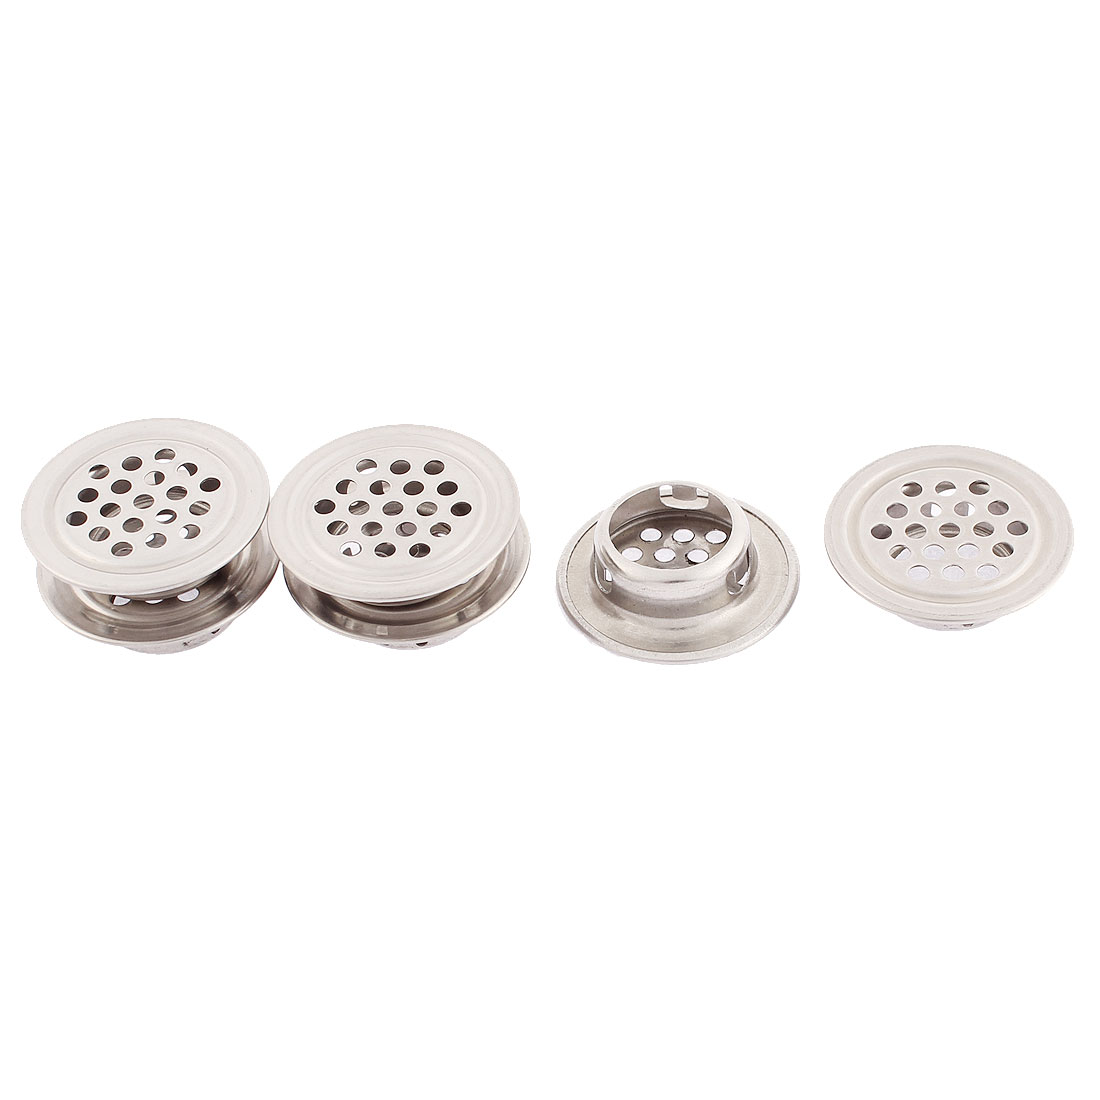 Kitchen Cabinet Metal Perforated Mesh Air Vents Louvers 30 x 8mm 6pcs